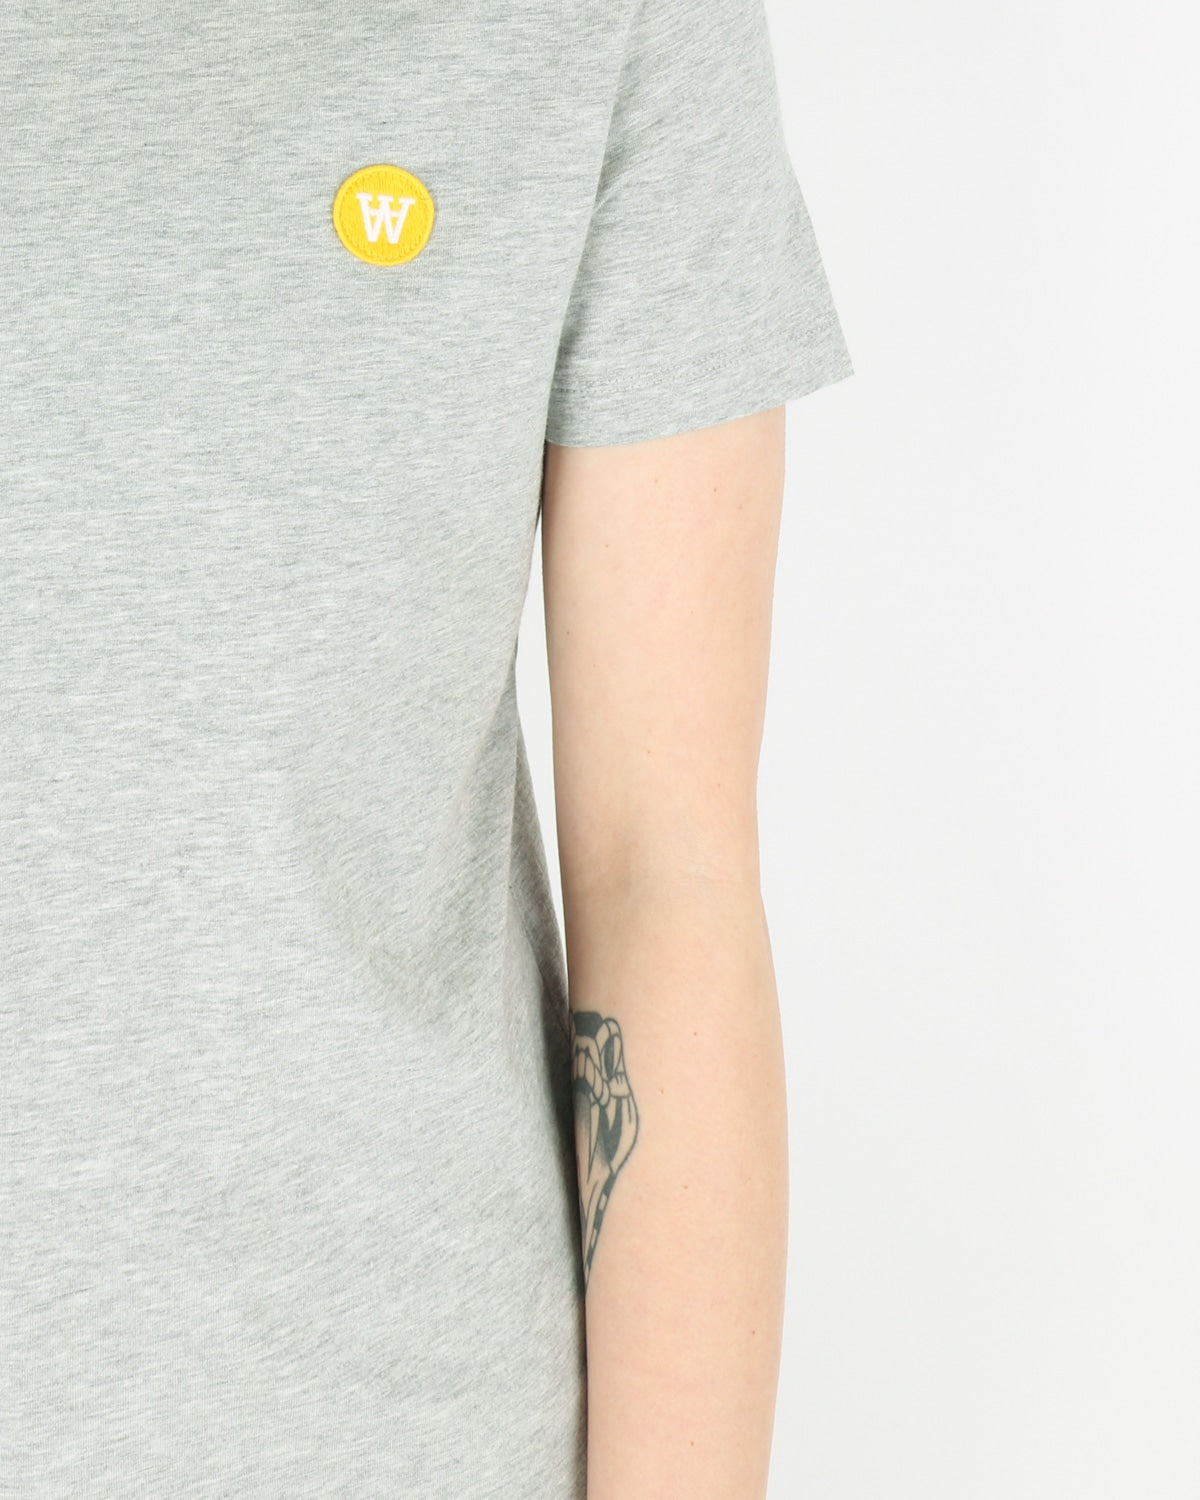 wood wood_uma t-shirt_grey melange_view_3_3